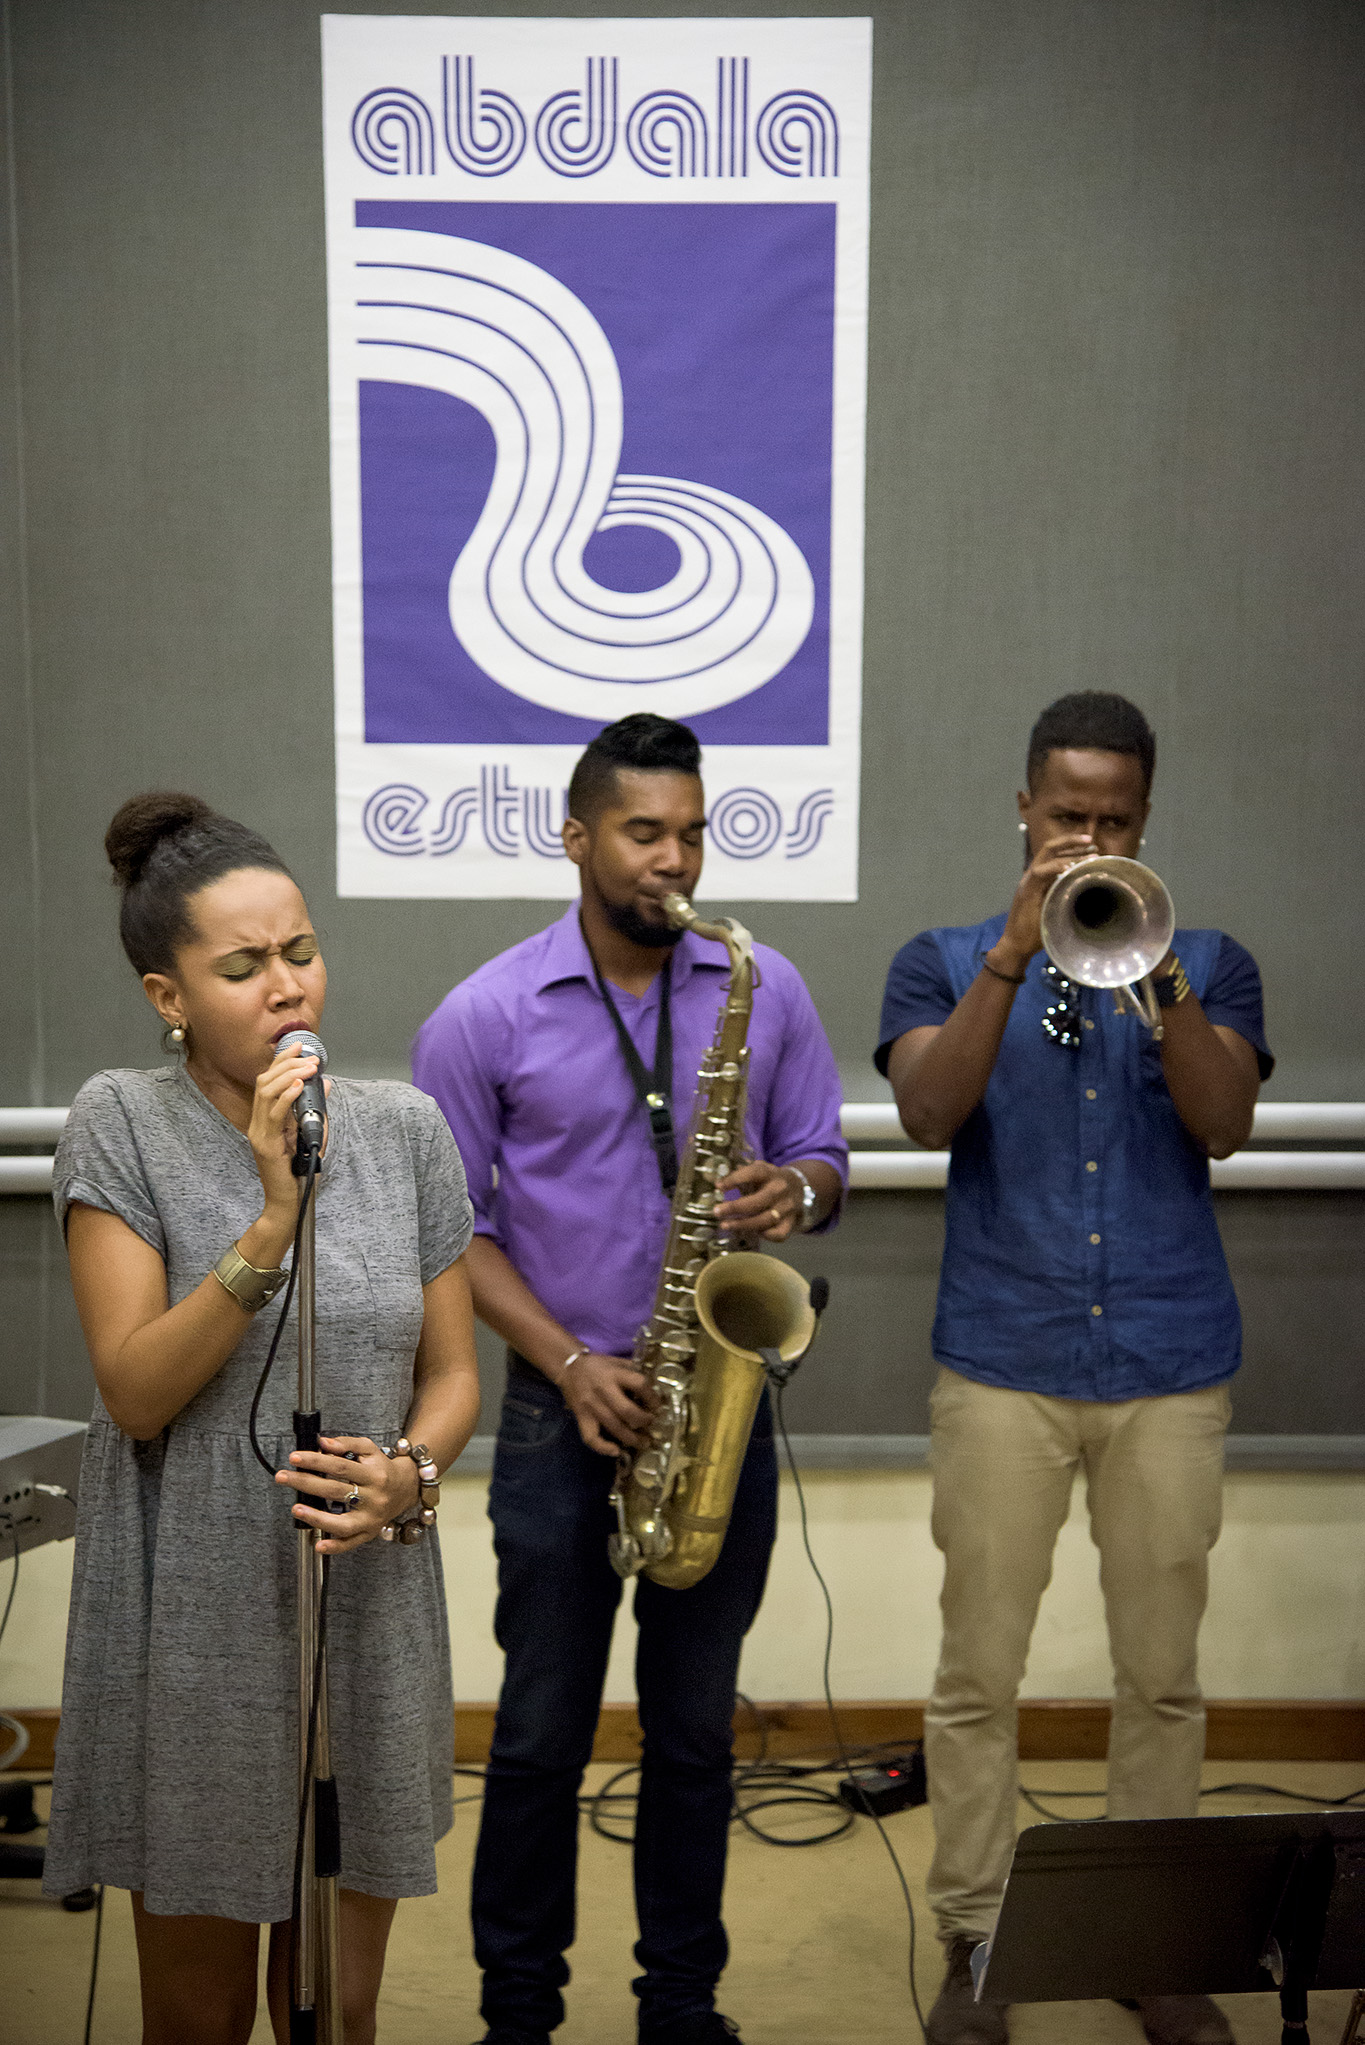 Our Jazz in Havana tour included unique experiences like meeting and jamming with young Cuban musicians at a top recording studio. Having an interest in music and art made this an amazing experience!